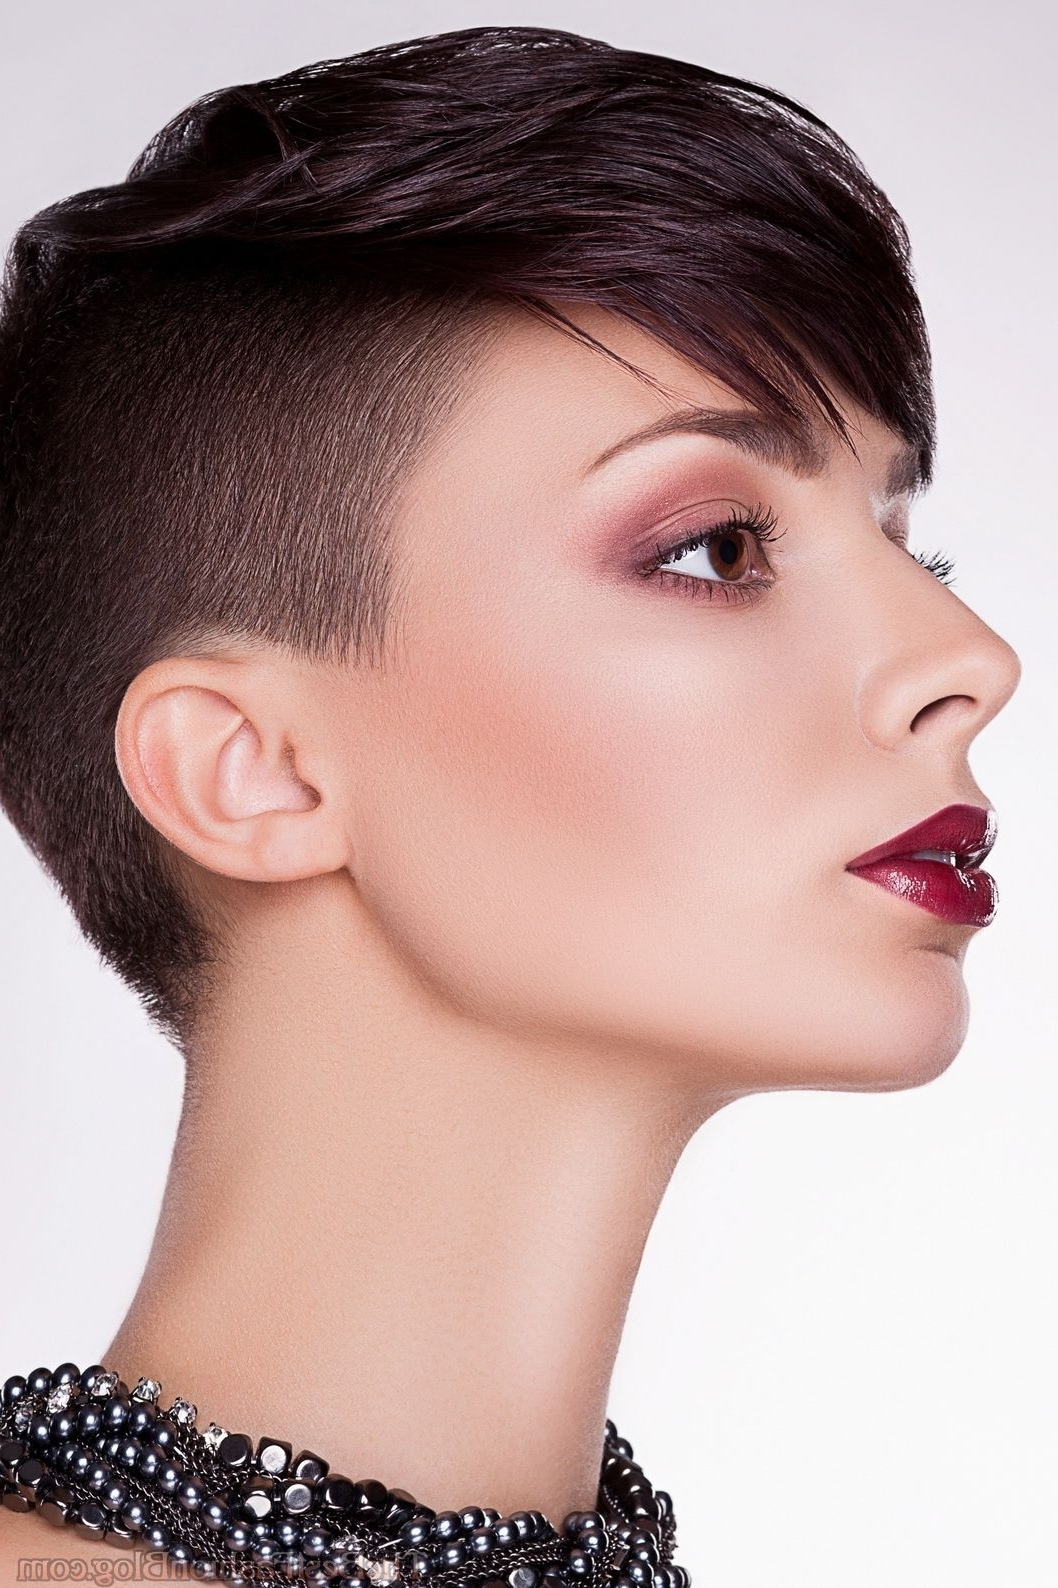 Womens Hair With Shaved Sides And Long Top Modern Pixie Haircuts Within Most Up To Date Pixie Hairstyles With Long On Top (View 10 of 15)